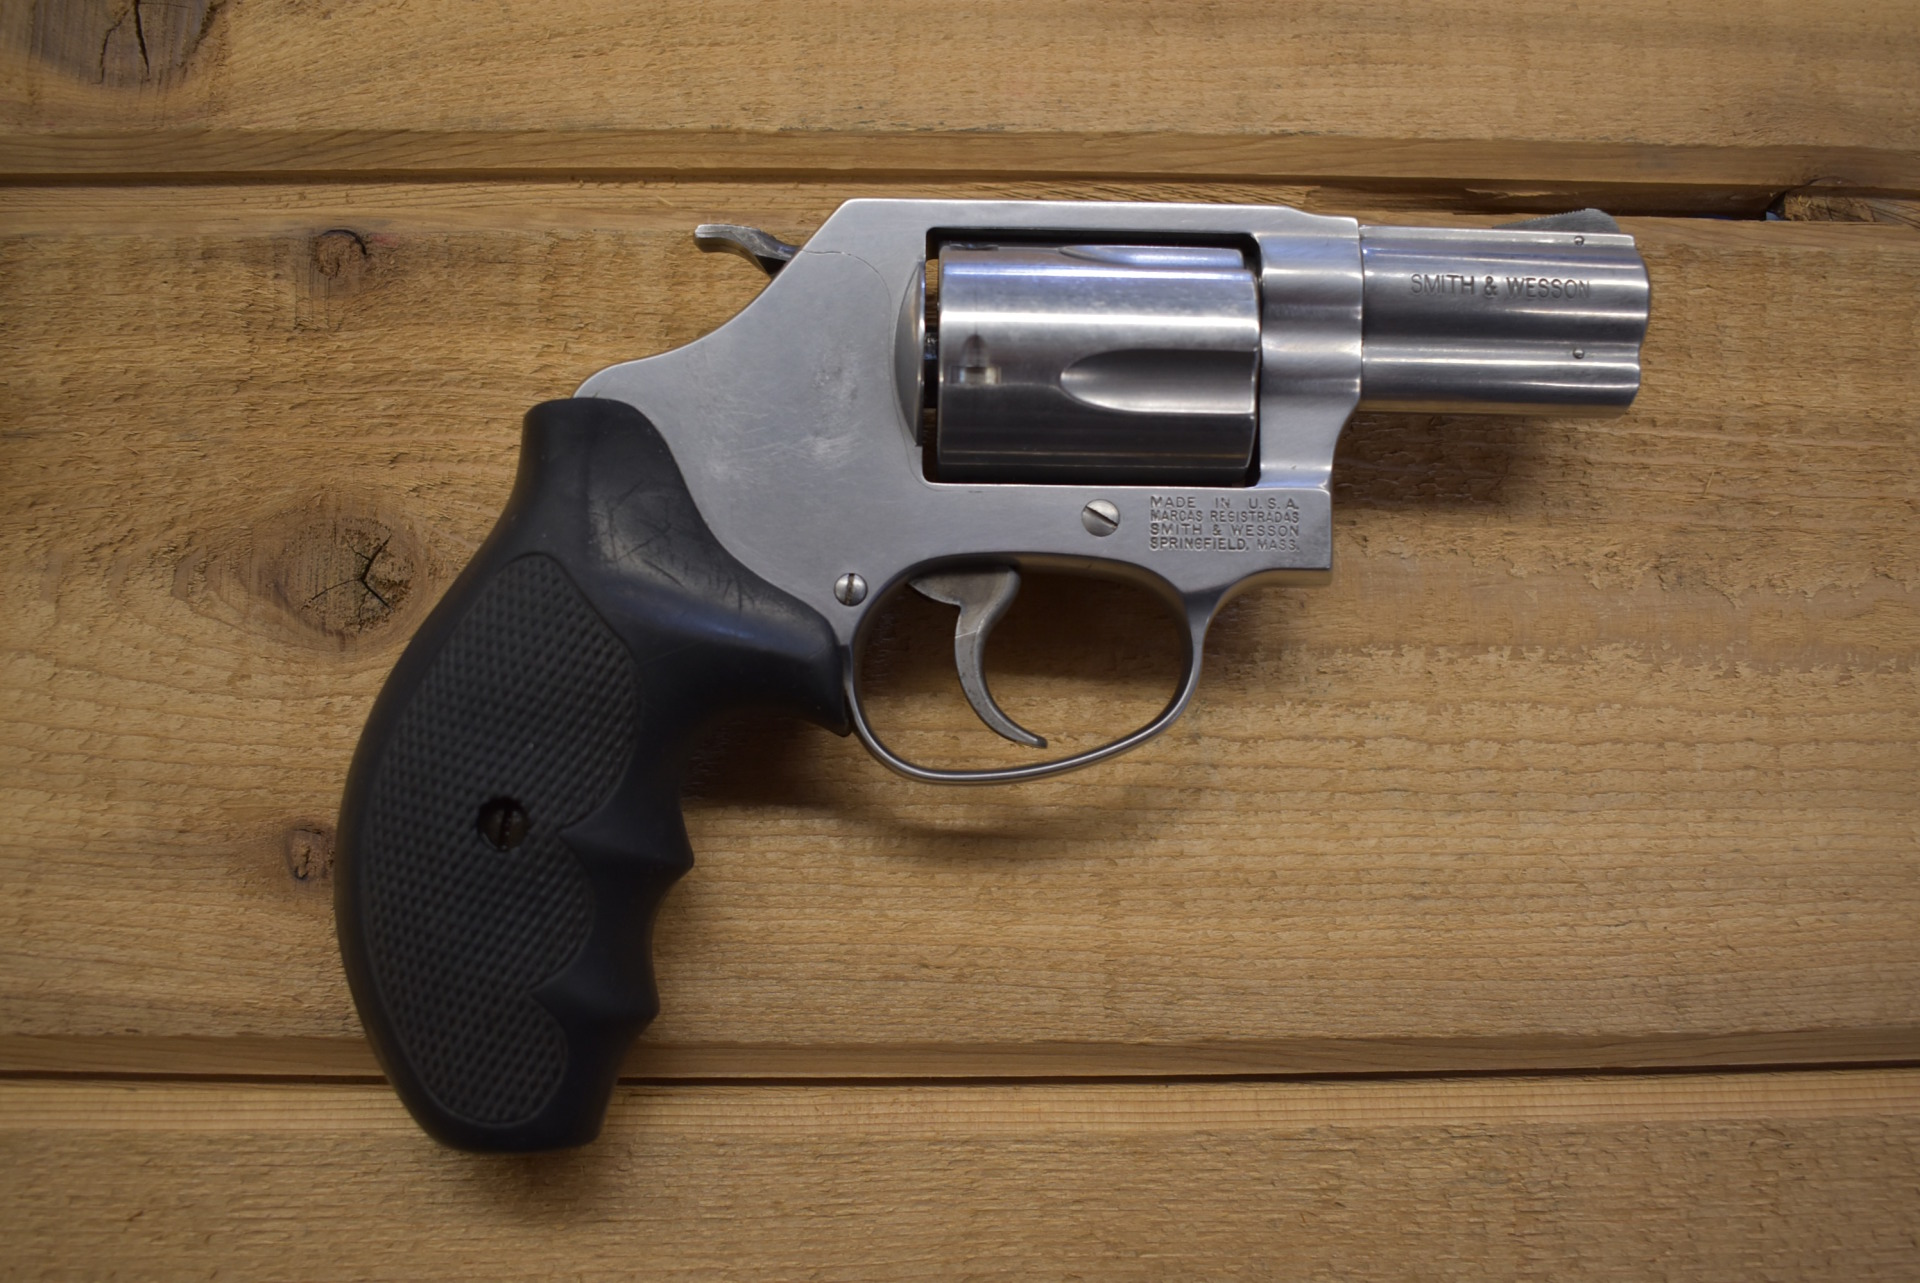 Smith & Wesson Model 60-14 .357 Magnum